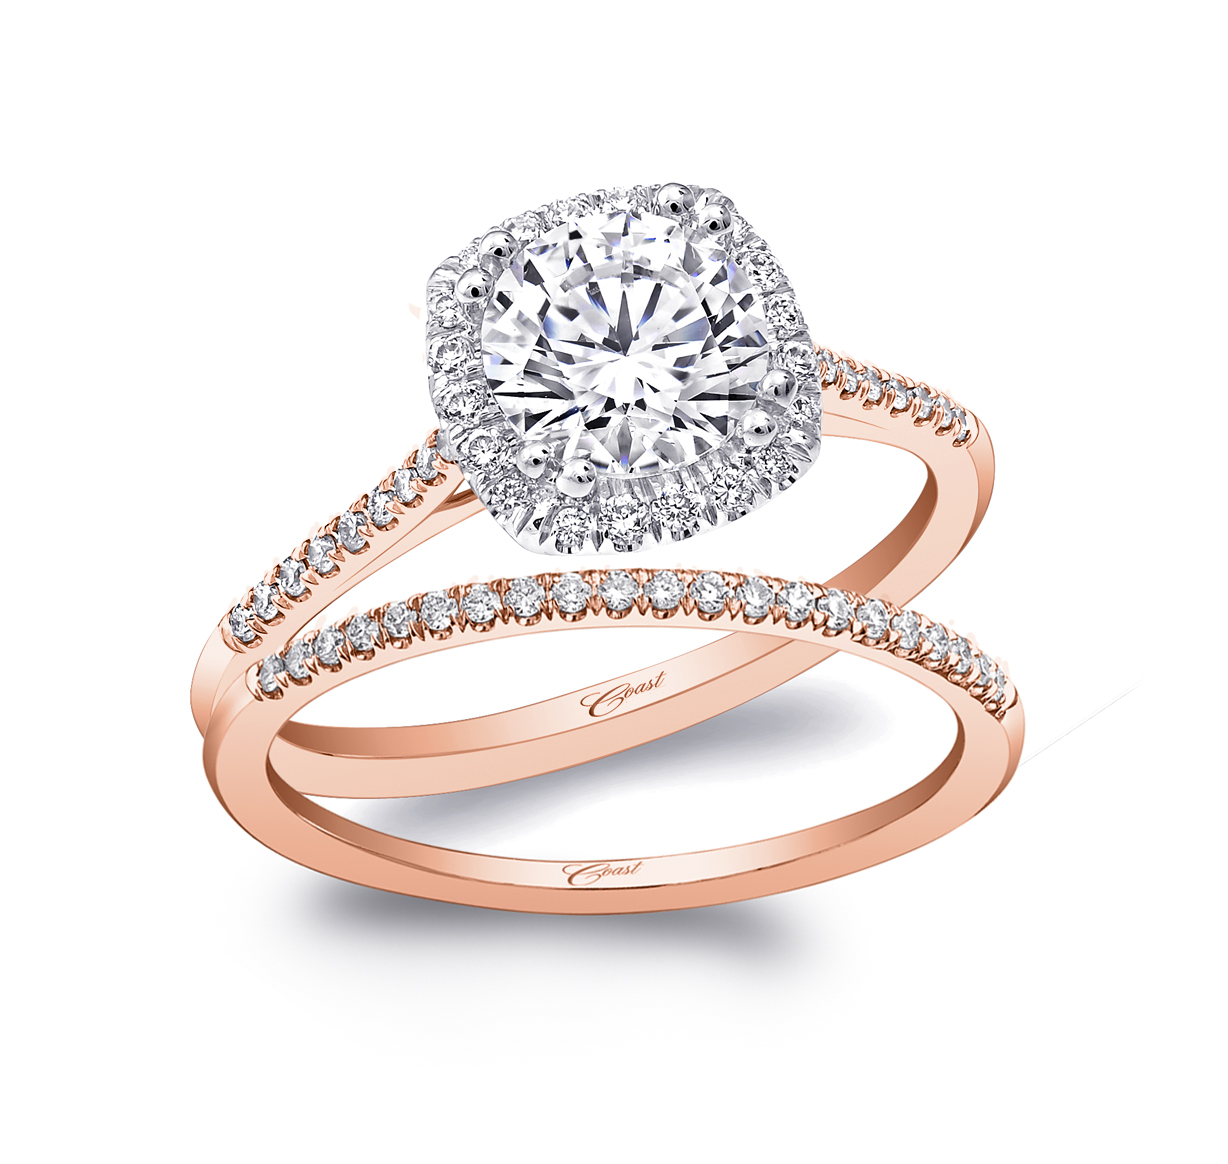 Coast Diamond Coast Diamond Bridal Collections Rose Gold Collection